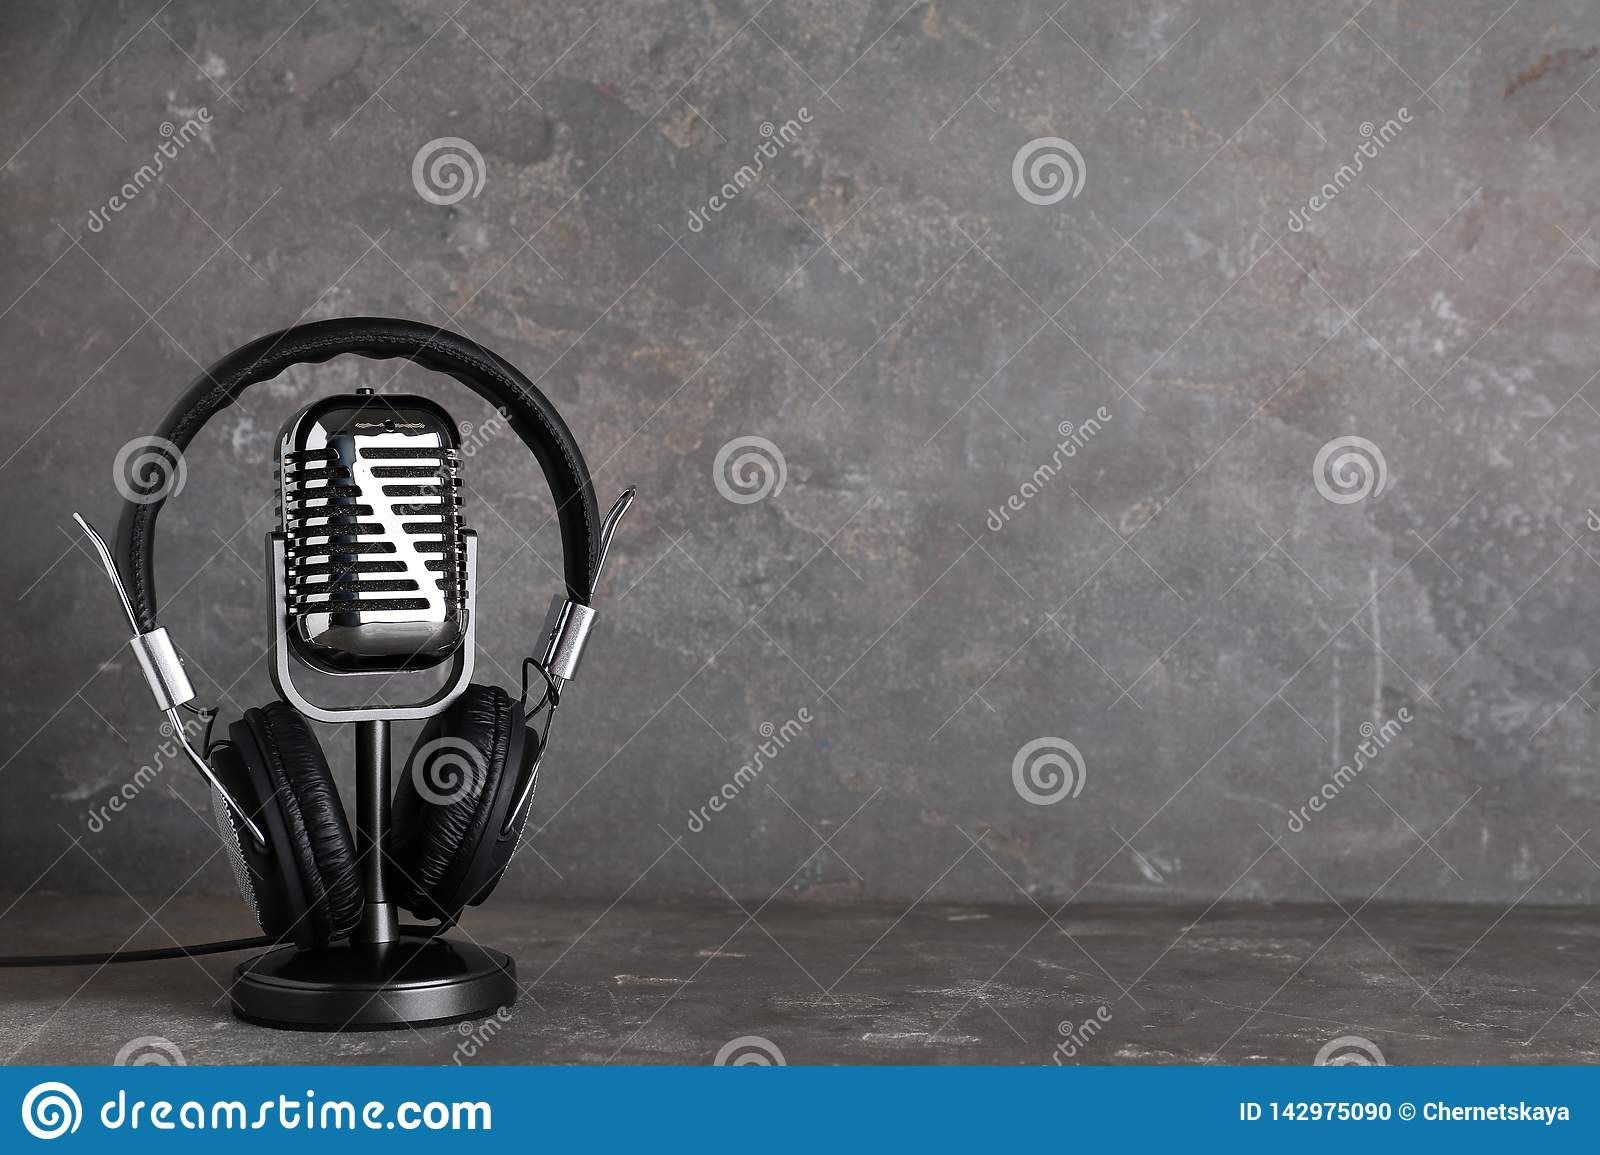 Retro microphone and headphones on table against grey background